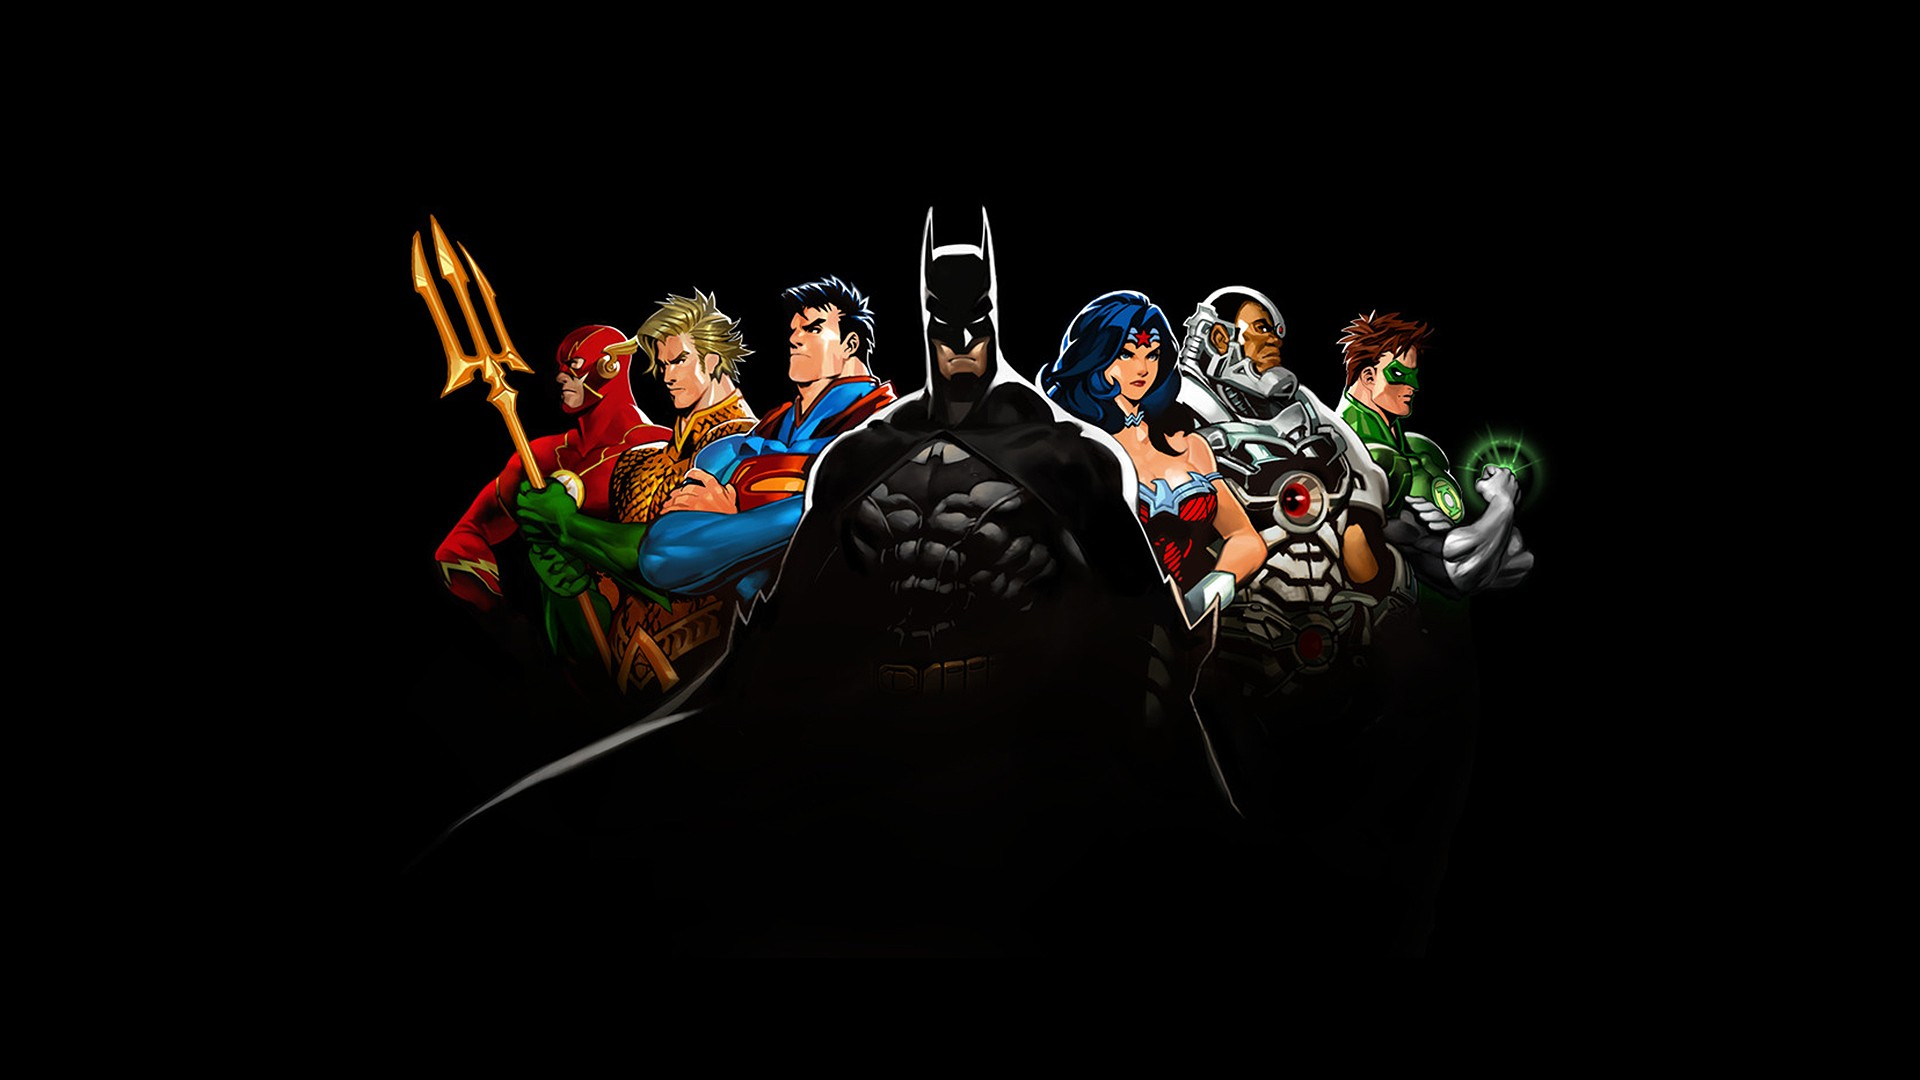 Hd wallpaper justice league - Hd Wallpaper Justice League Justice League Wallpaper Images Photos Cfl2tf13 Yoanu